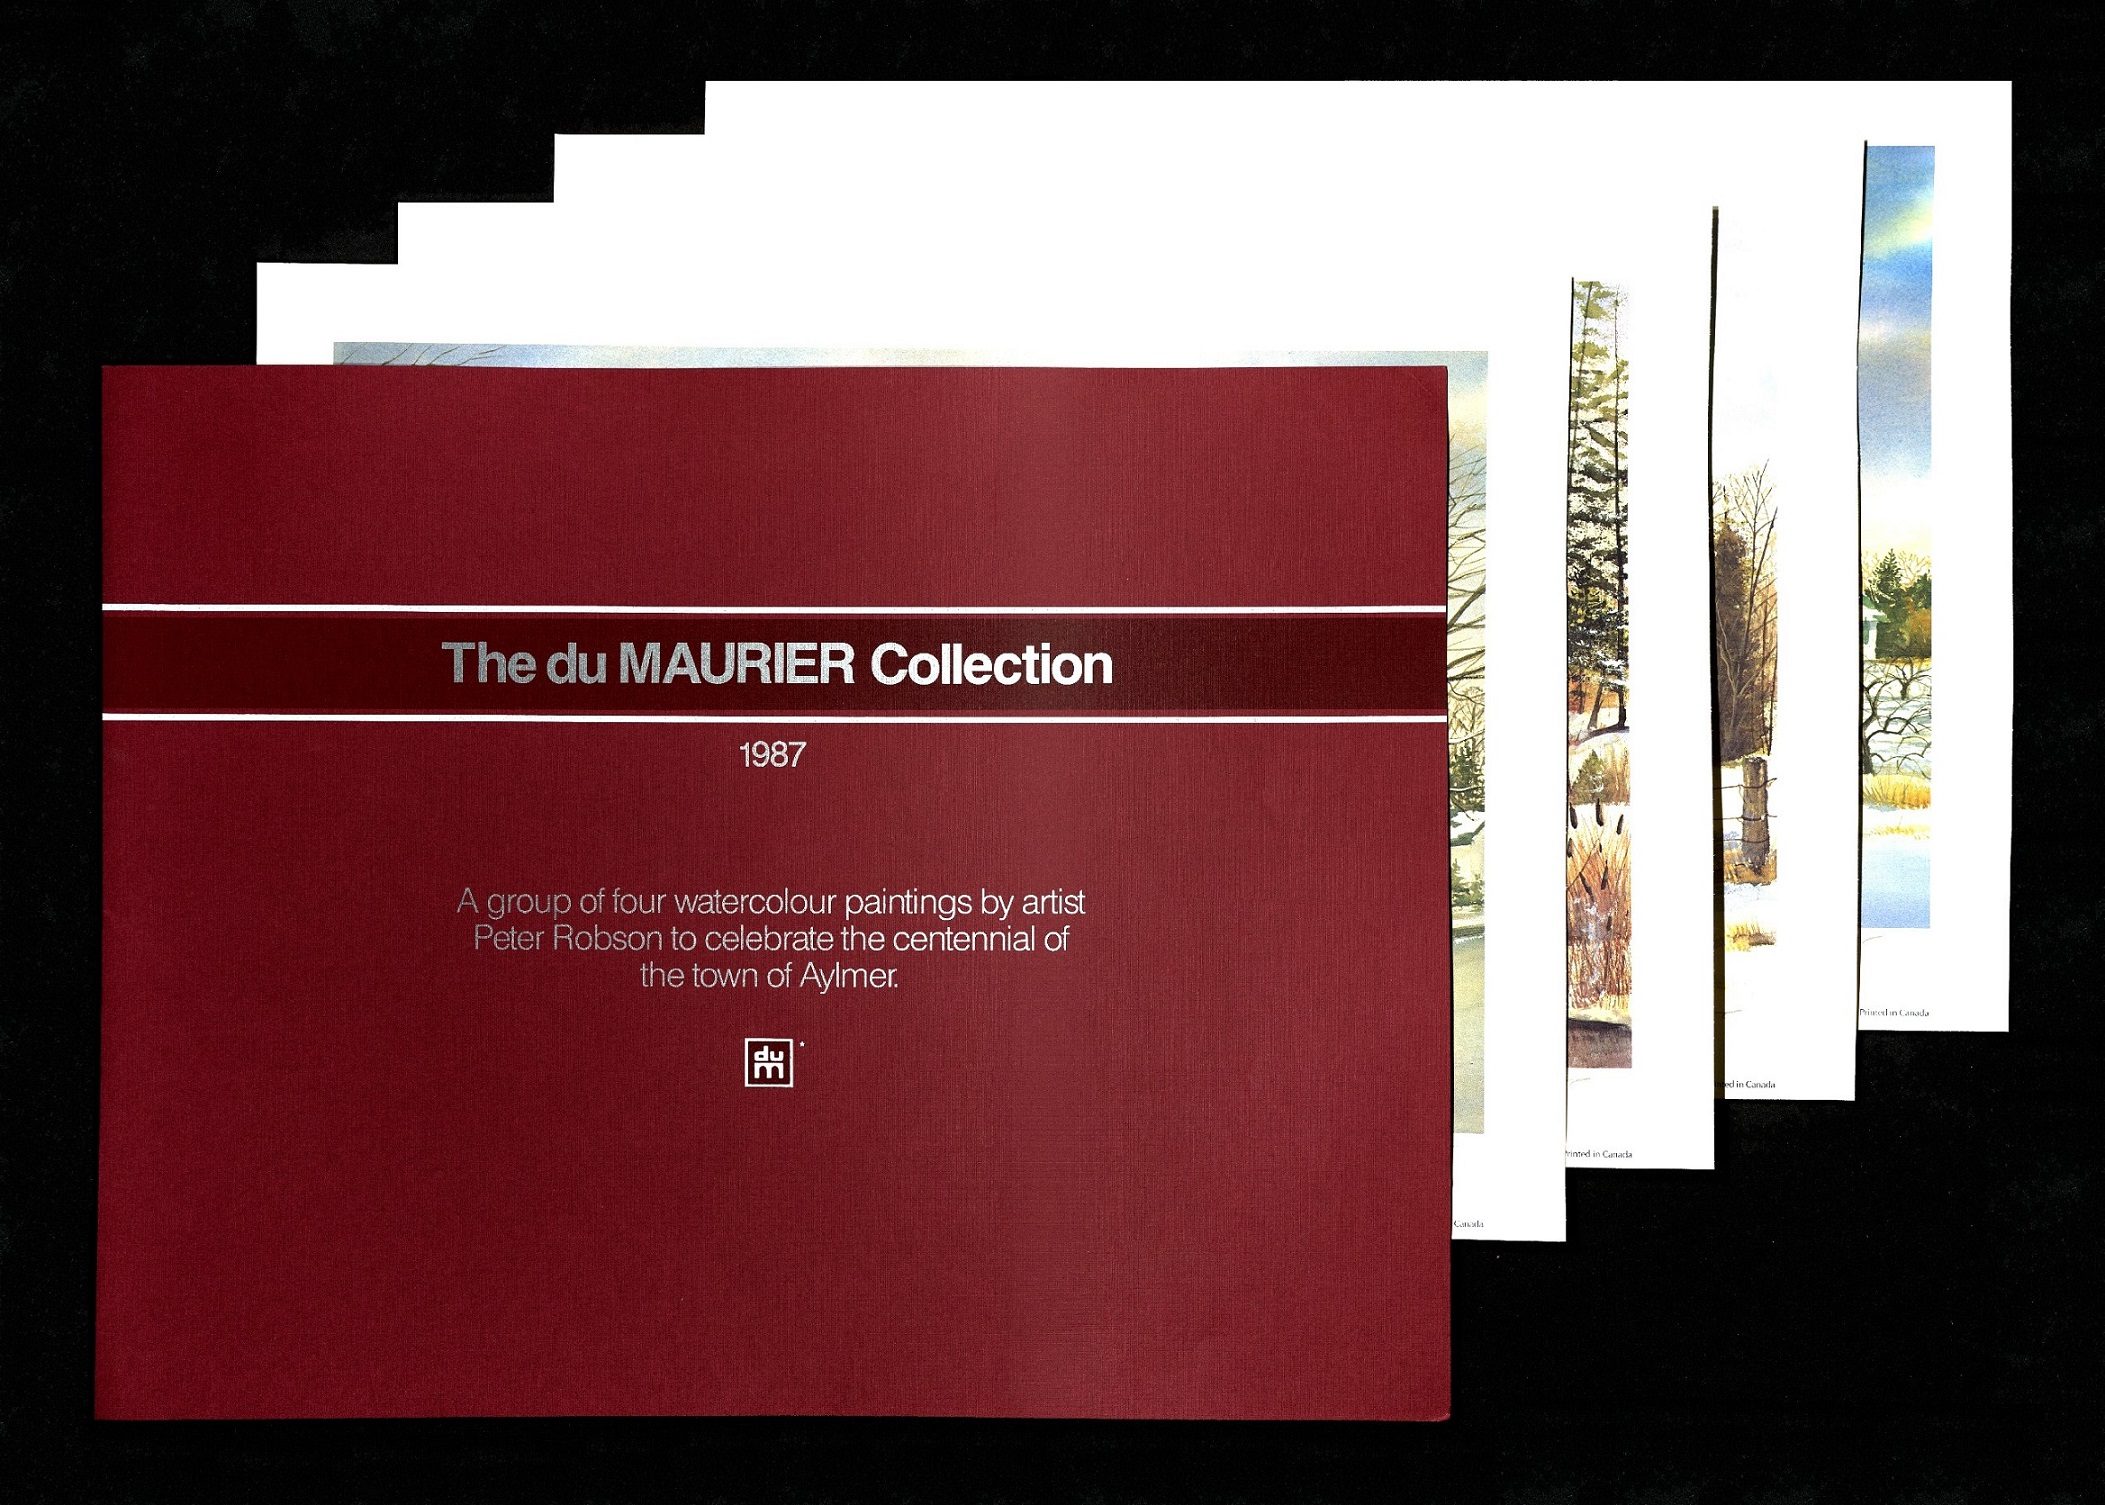 All four prints in the Du Maurier collection depicted with their containing folder.